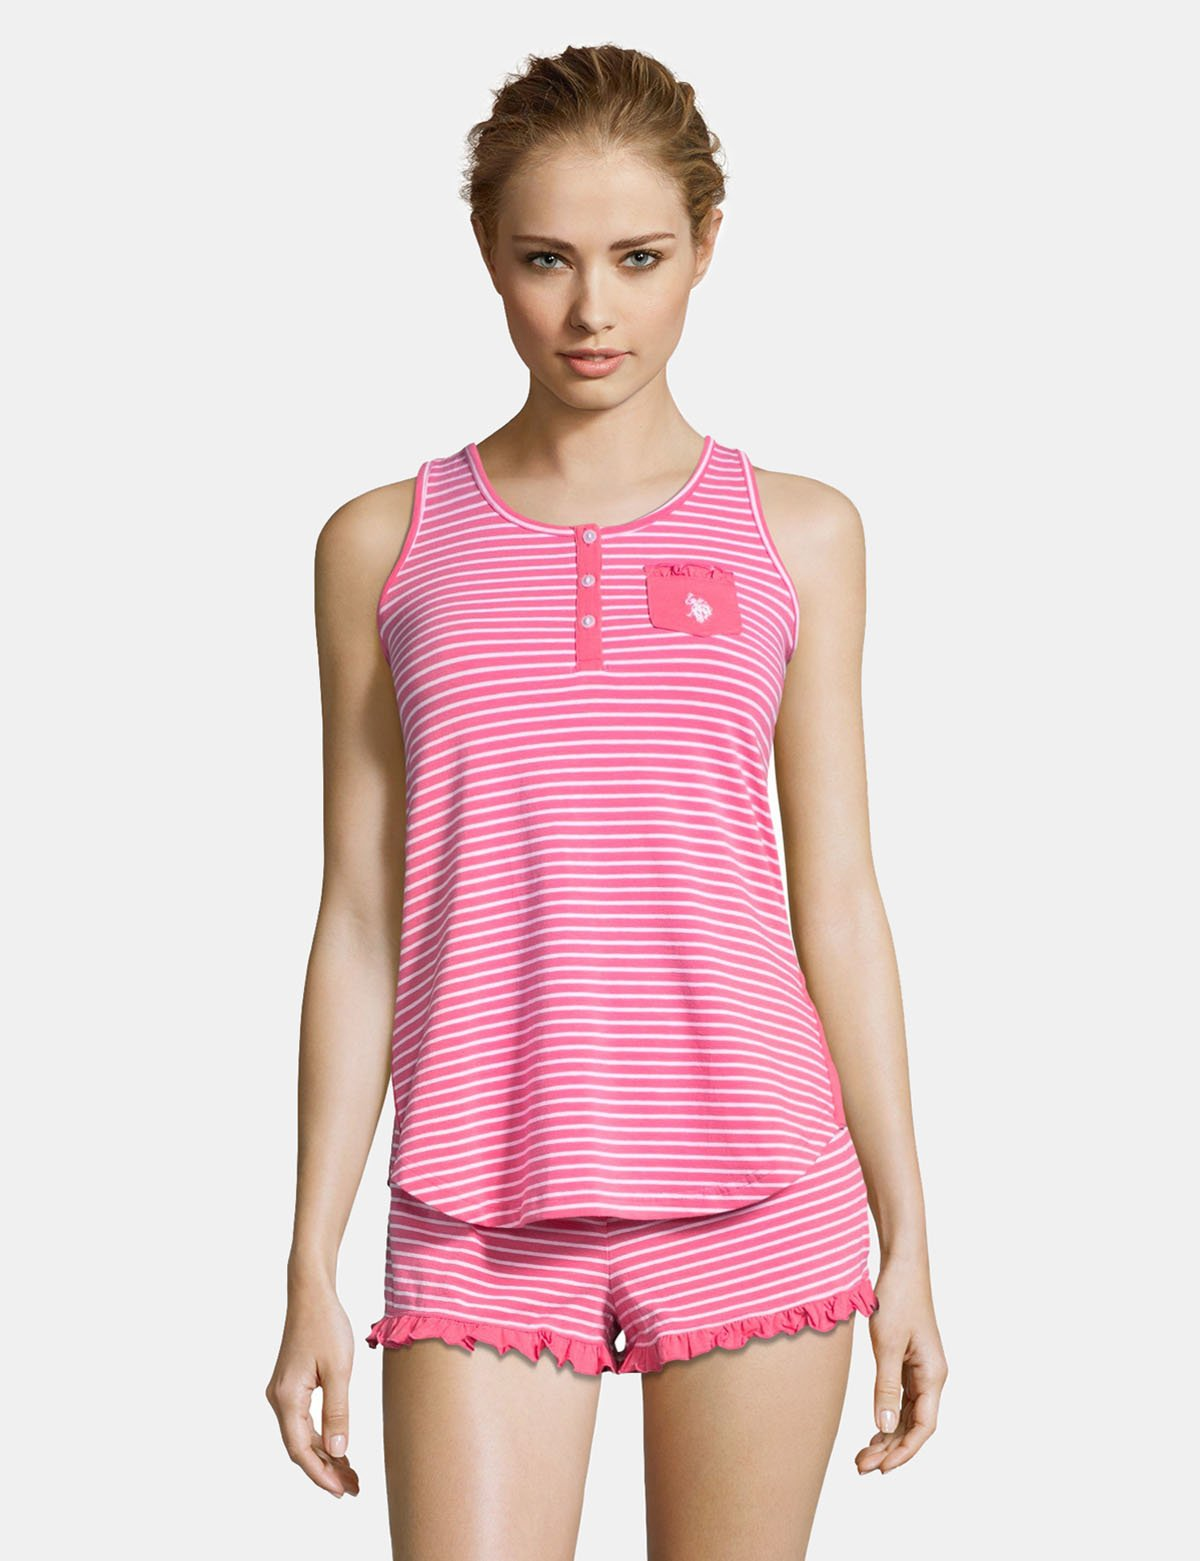 STRIPED TANK & SHORTS SET - U.S. Polo Assn.